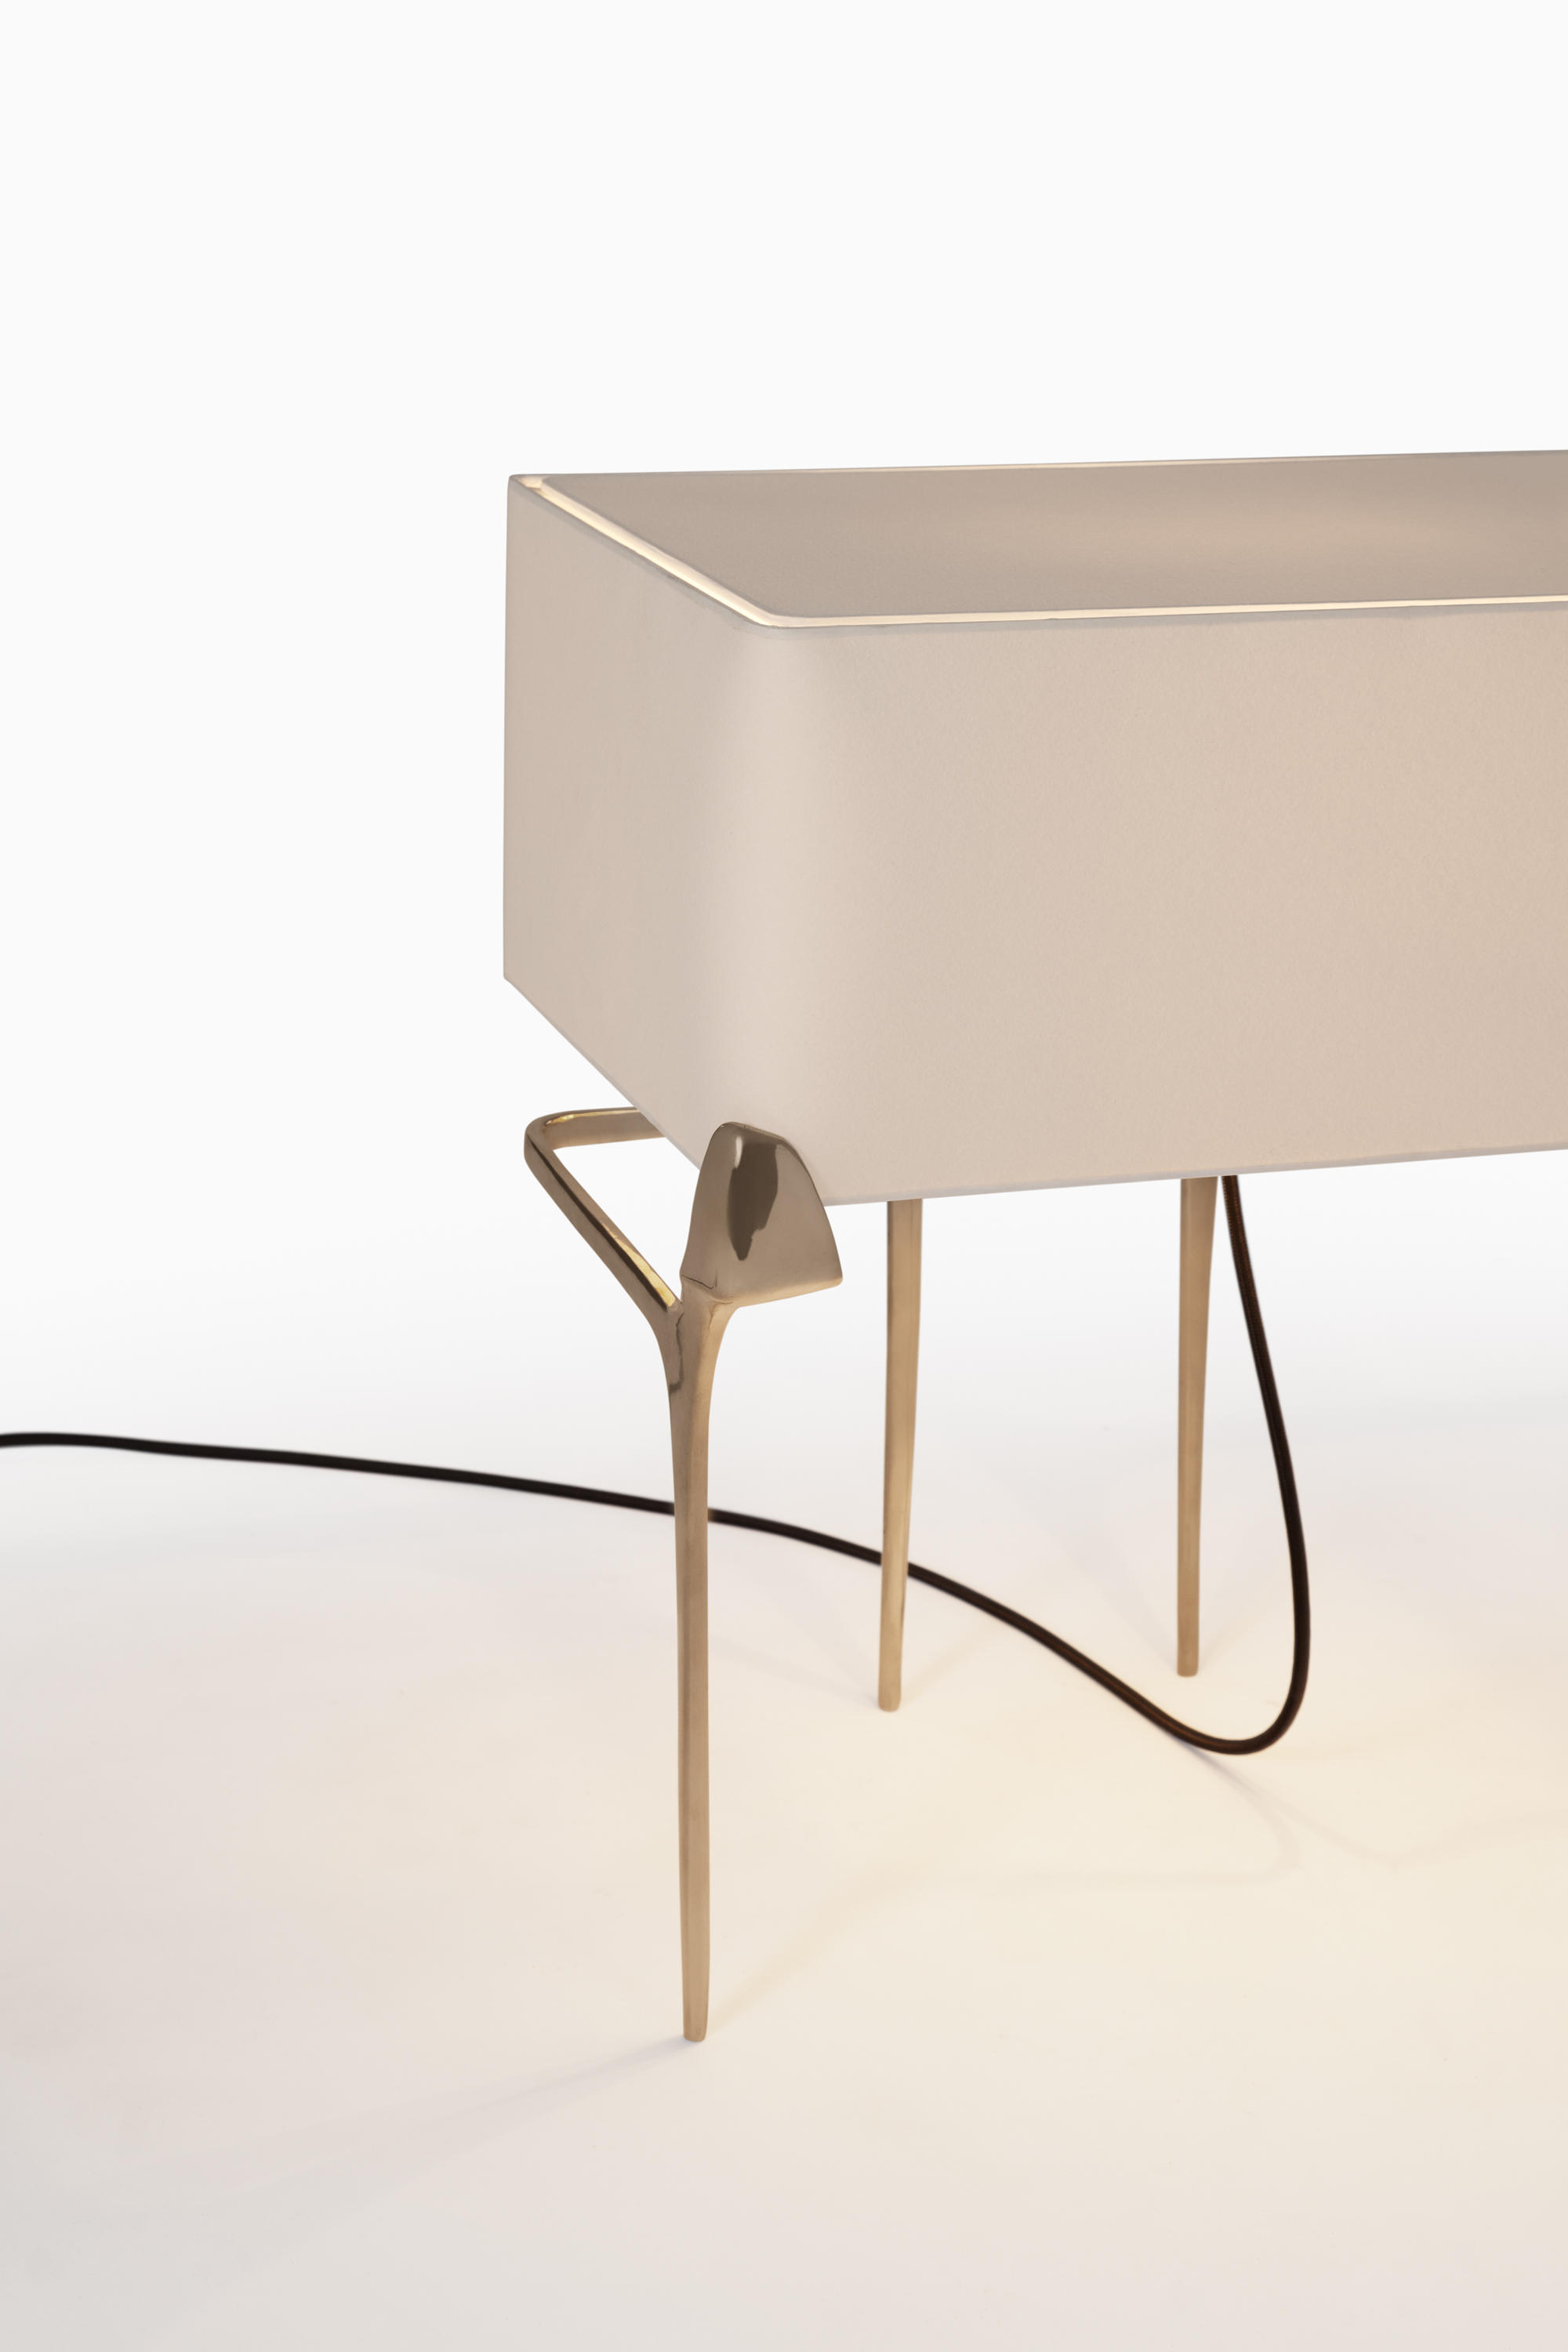 Charmant ... Flint Table Lamp By CASTE | Table Lights